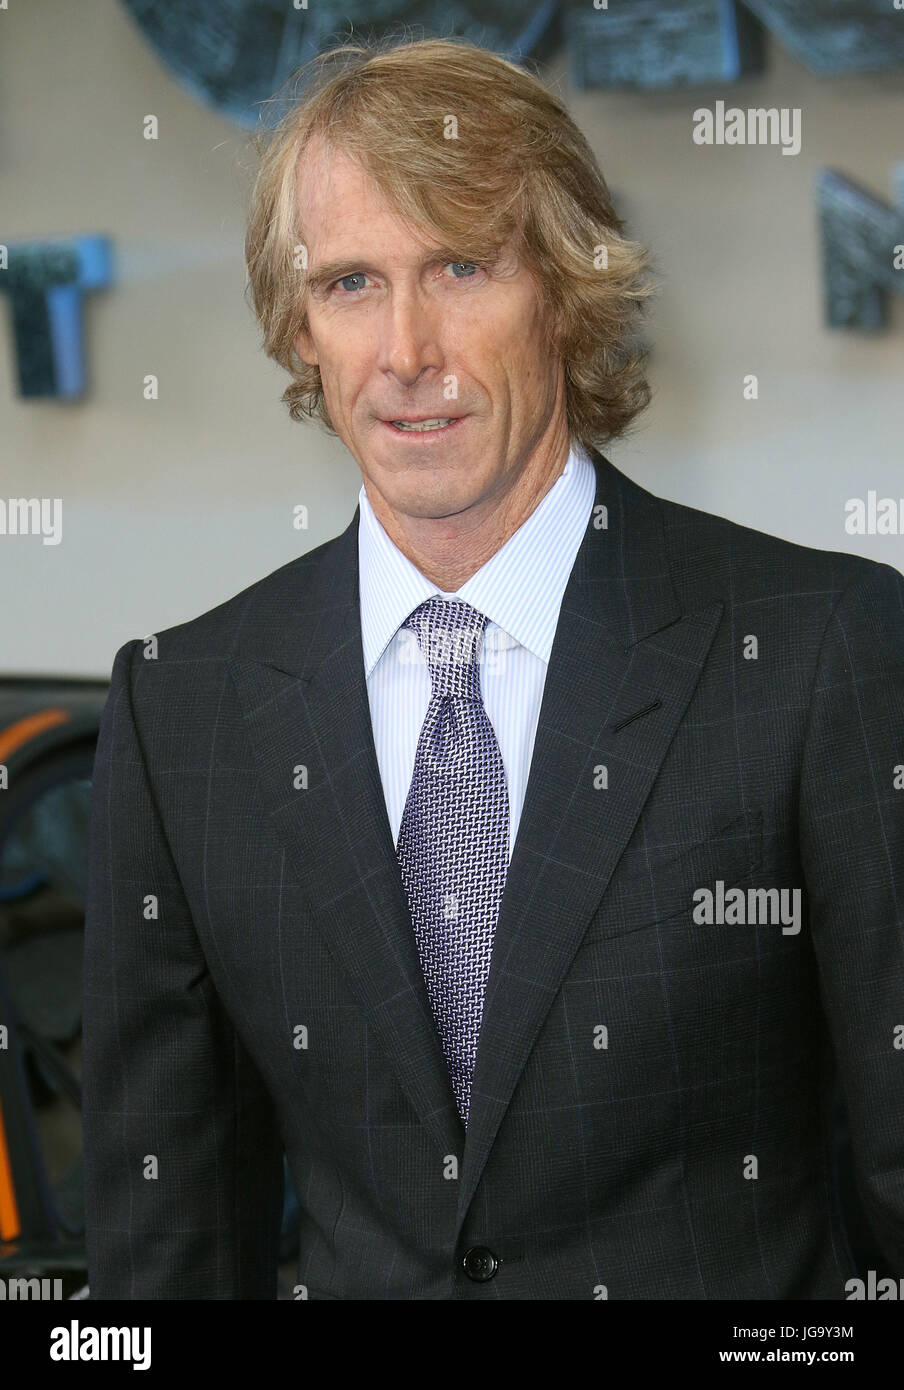 Jun 18, 2017 - Michael Bay attending Transformers: The Last Knight Global Premiere, Leicester Square in London, - Stock Image